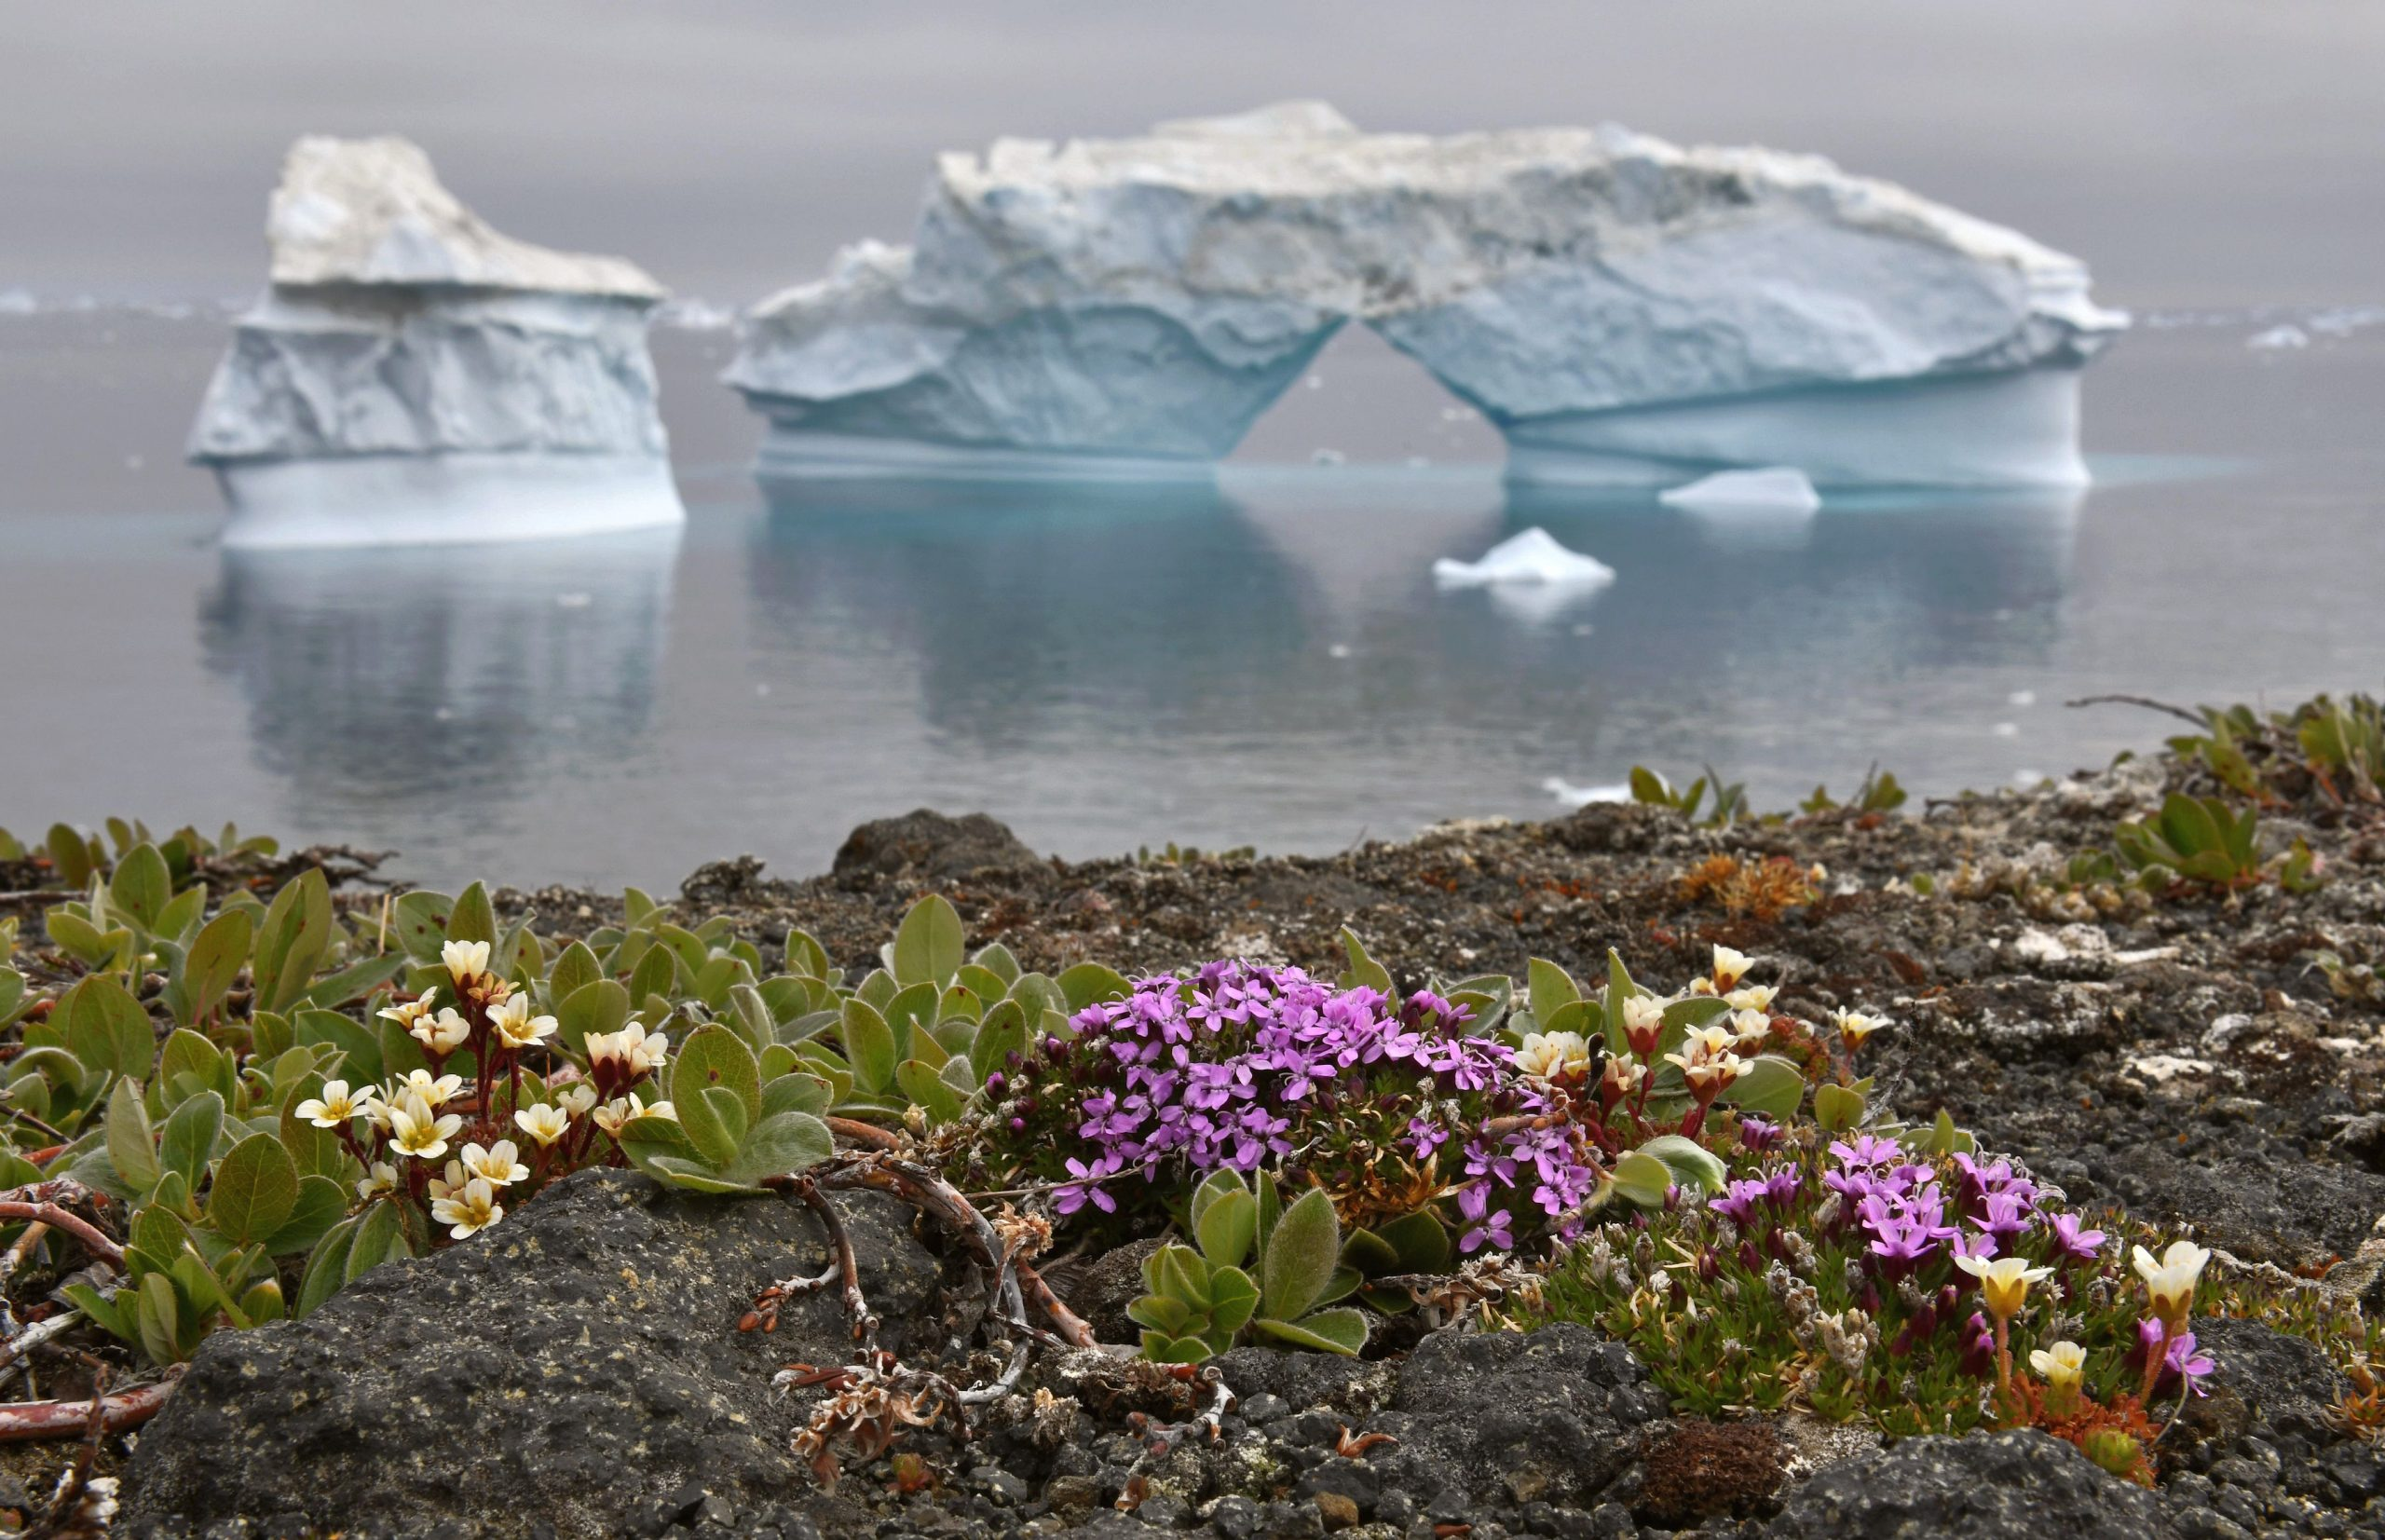 ice melts arctic, more plants are found